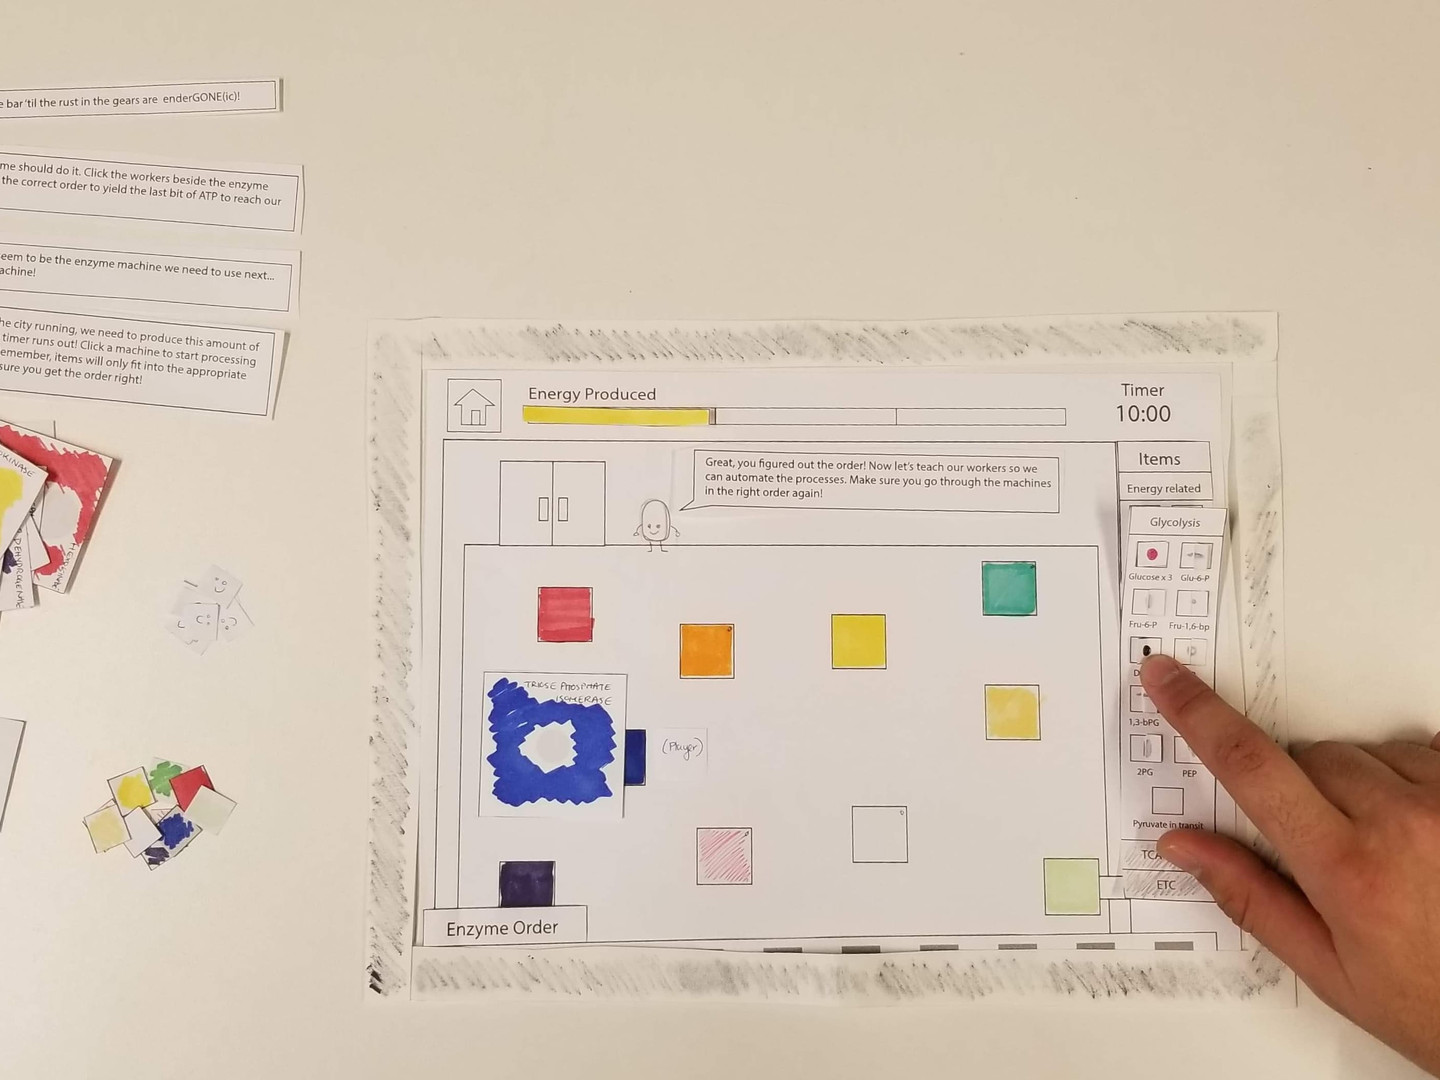 Paper Prototype Level 1